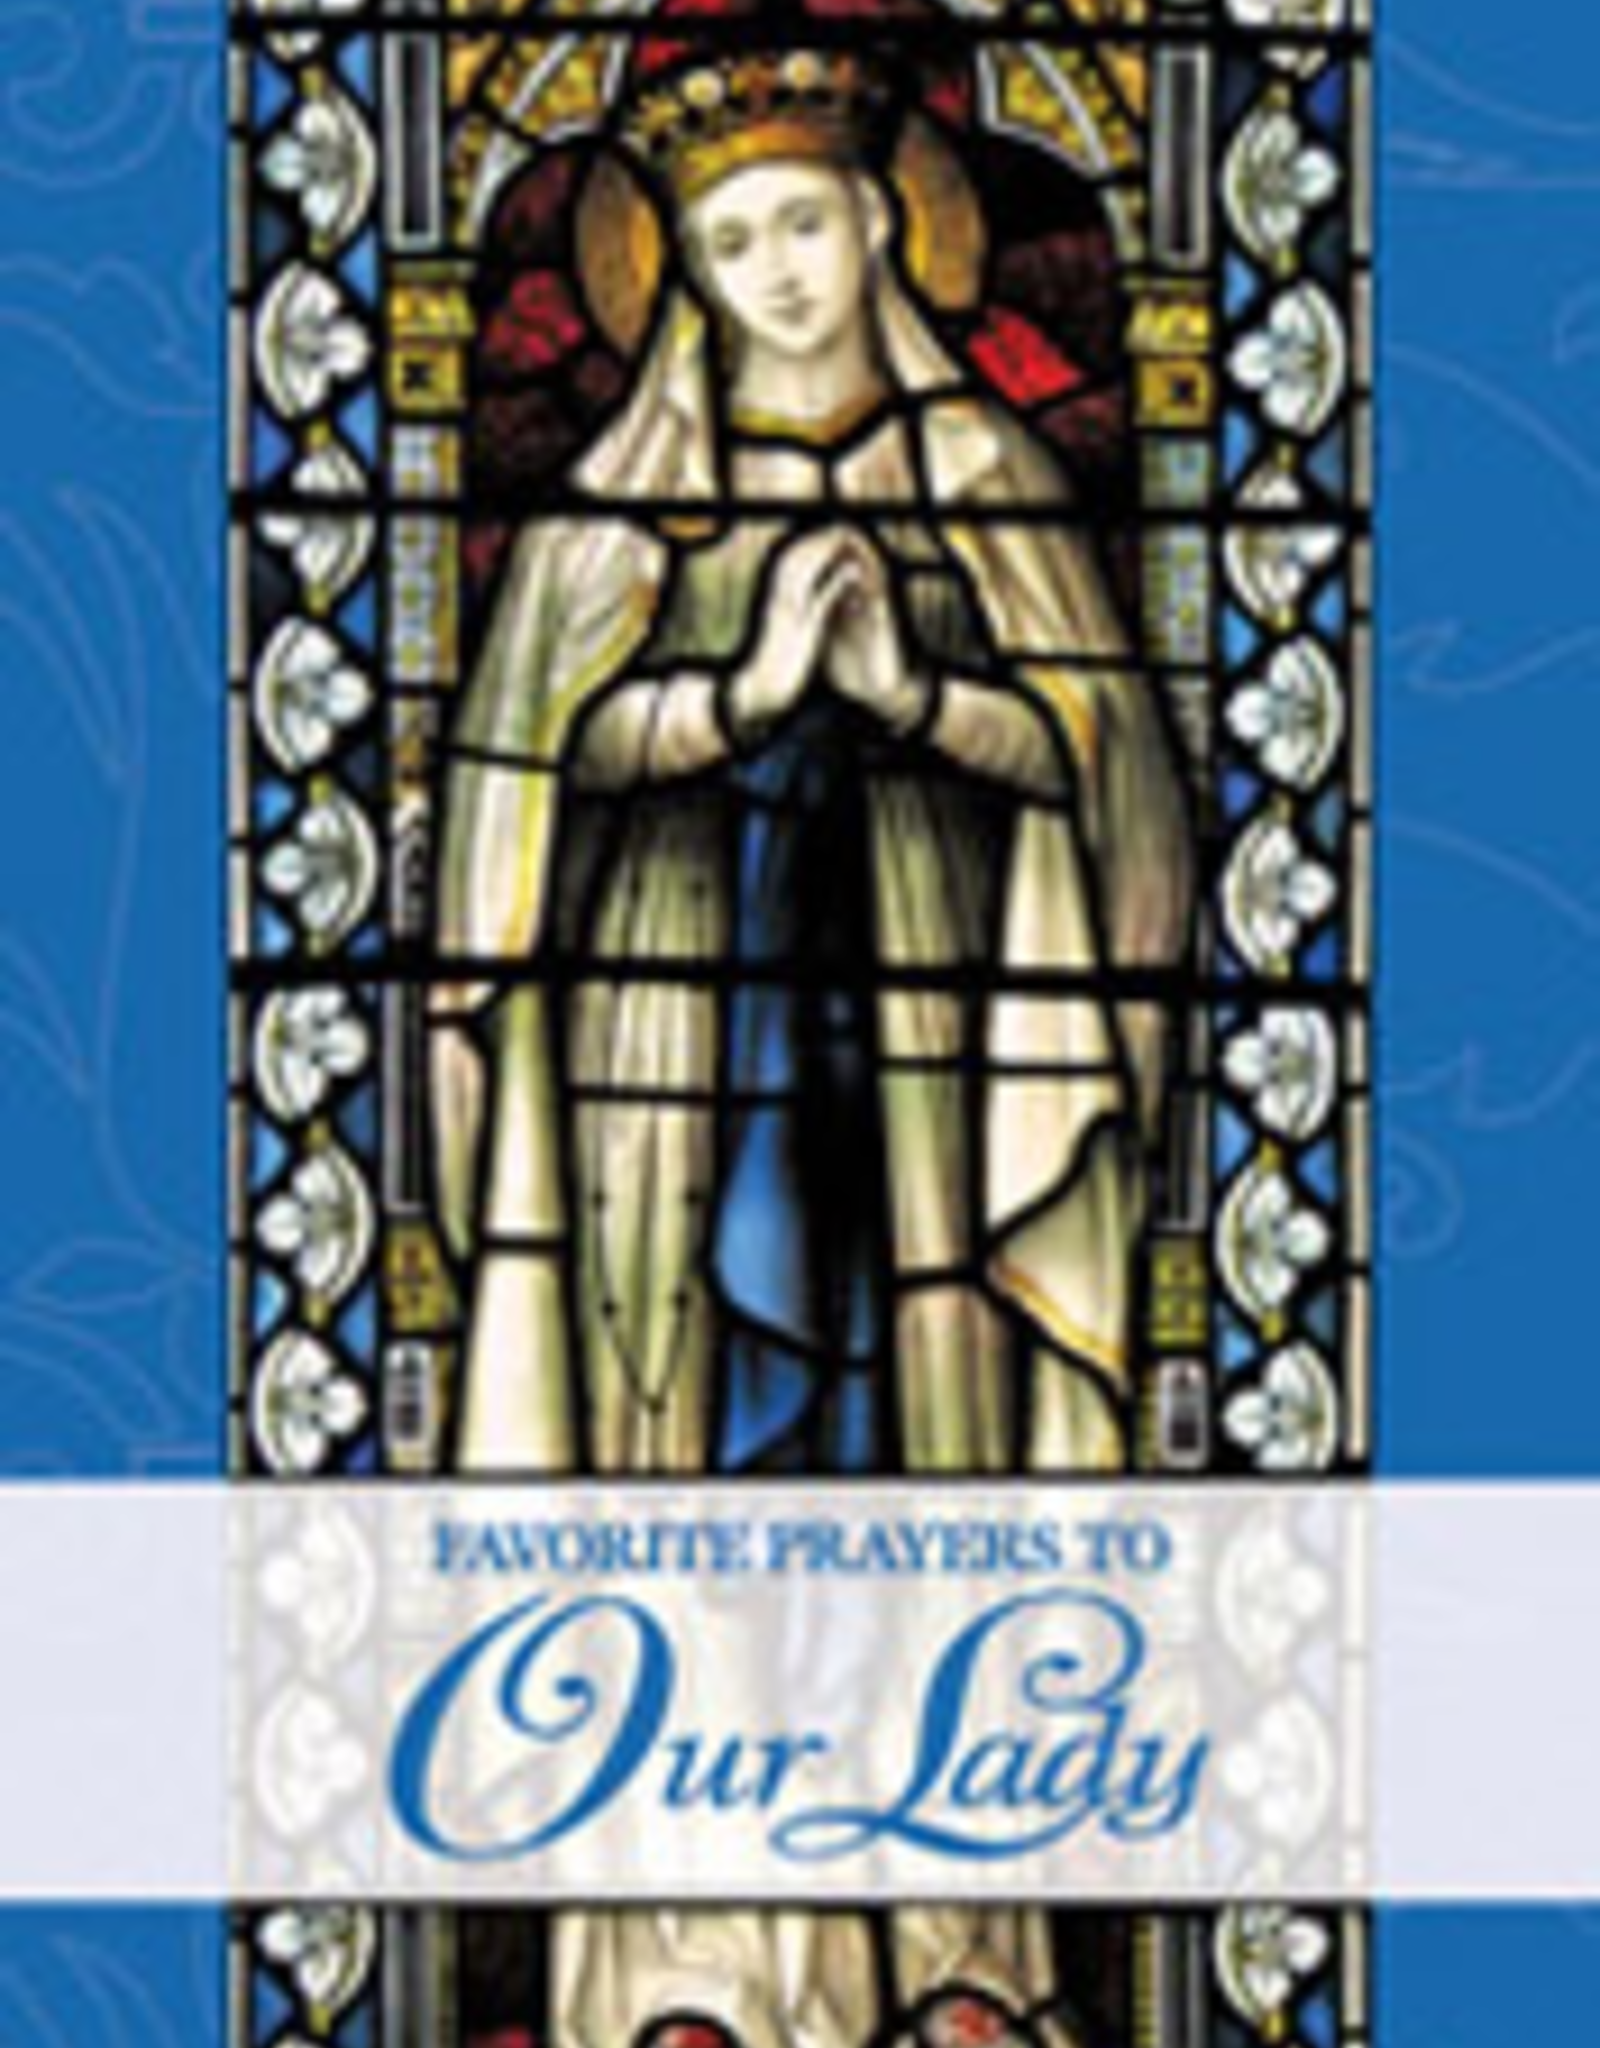 Tan Books Favorite Prayers to Our Lady, compiled by Mary Frances Lester